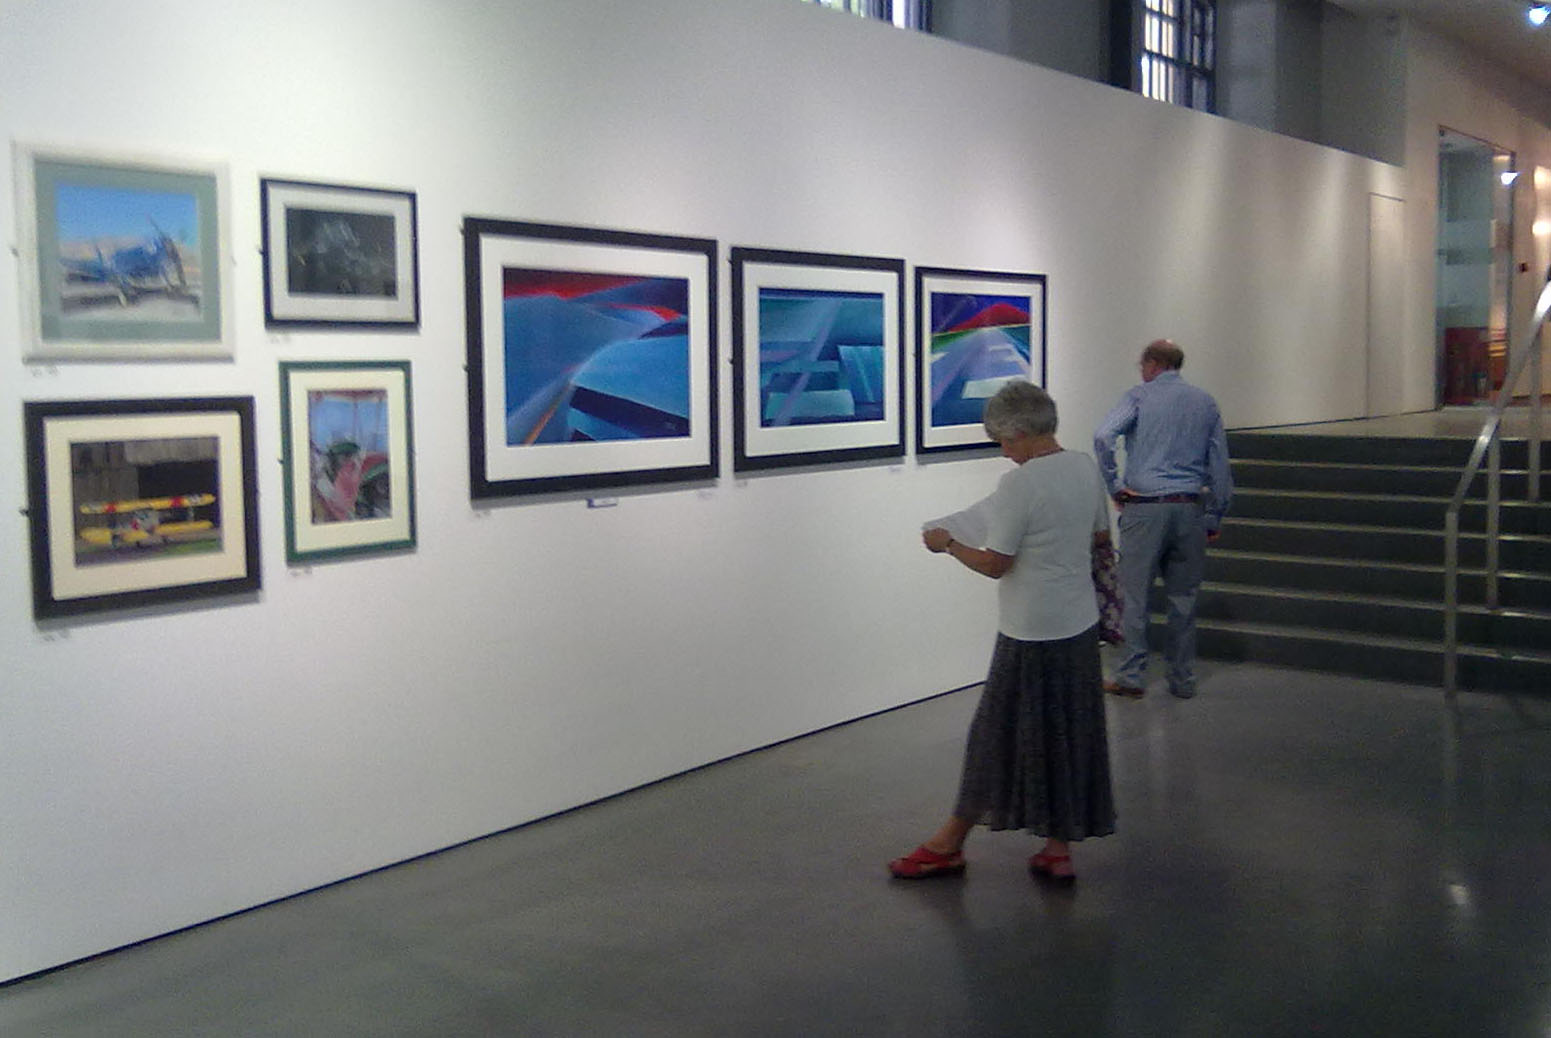 Guild of Aviation art at exhibition in mall gallery london